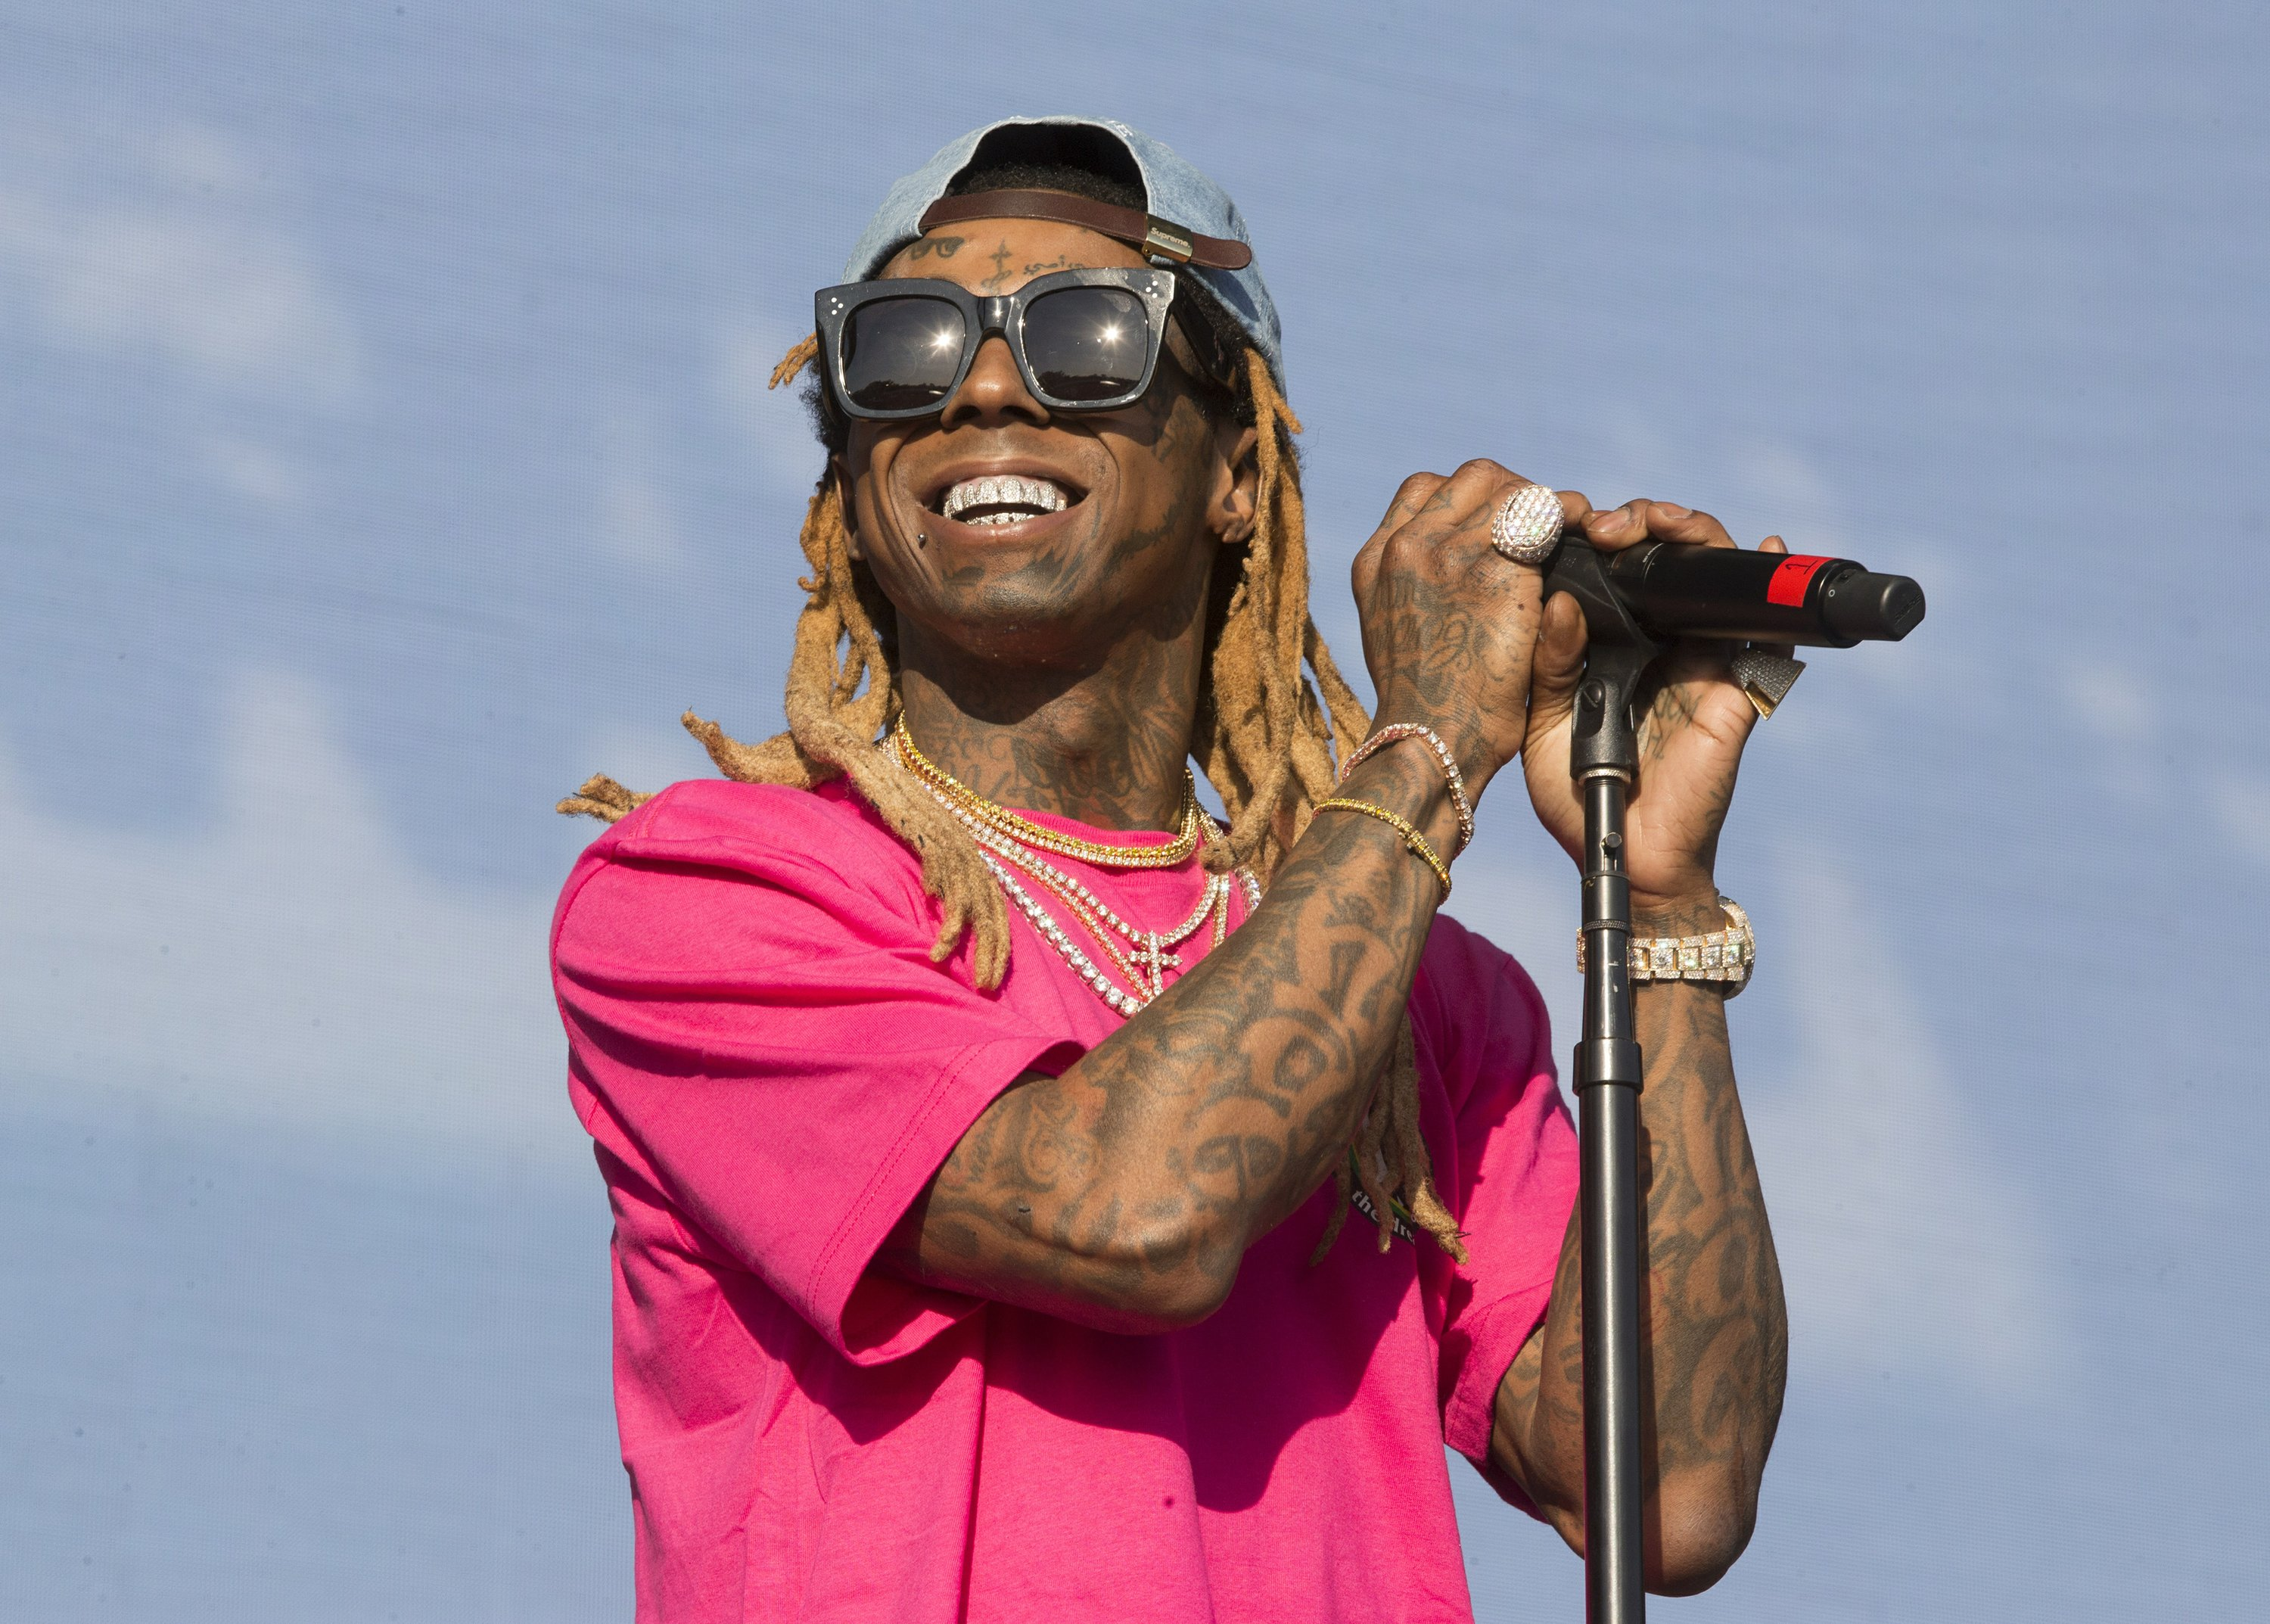 Rapper Lil Wayne pleads guilty to federal weapons charge - The Associated Press